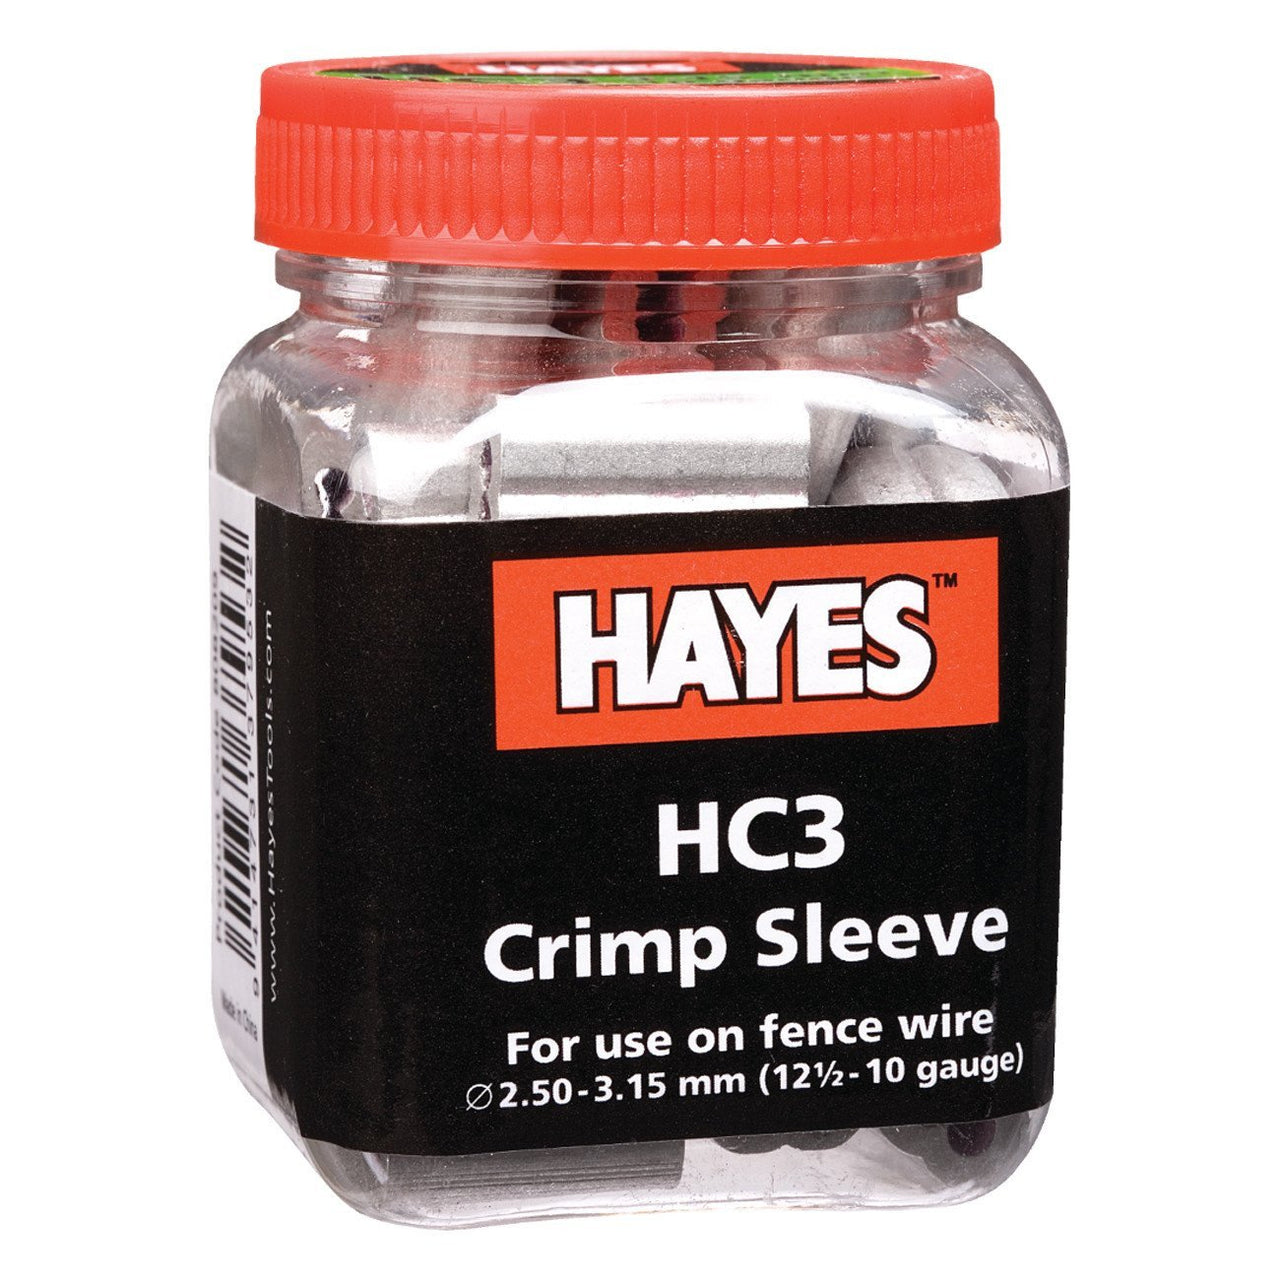 Hayes Hc3 Crimp 10 - 12 Ga. (50 Units) - Fencing Hayes - Canada